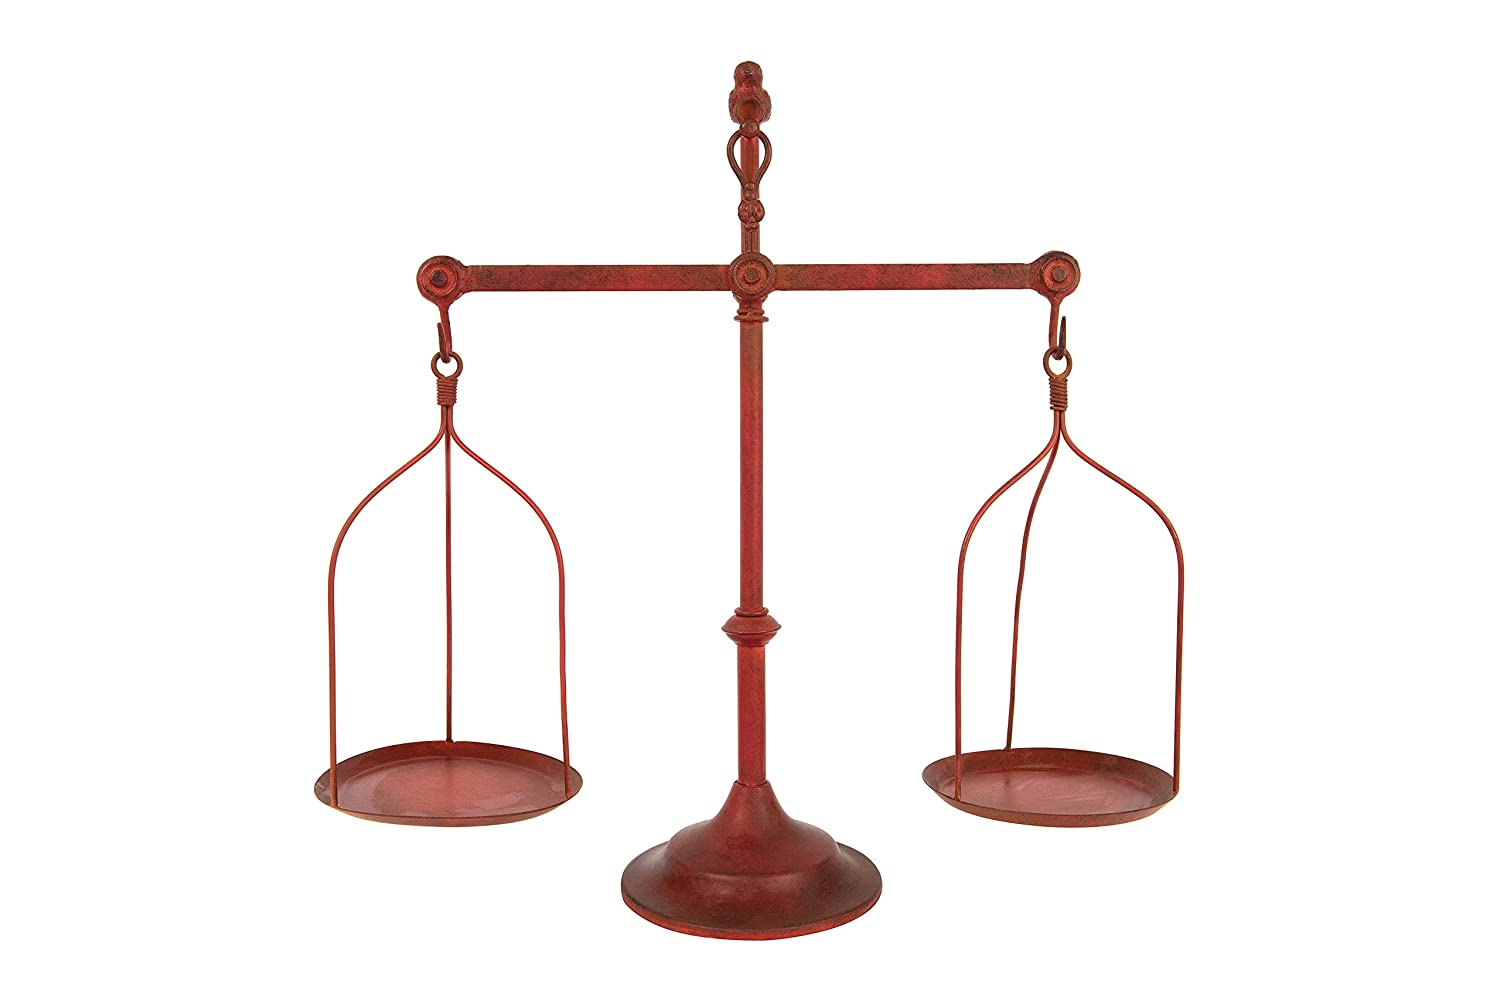 Creative Co-op Decorative Distressed Vintage Metal Scale with Bird Finial, Red